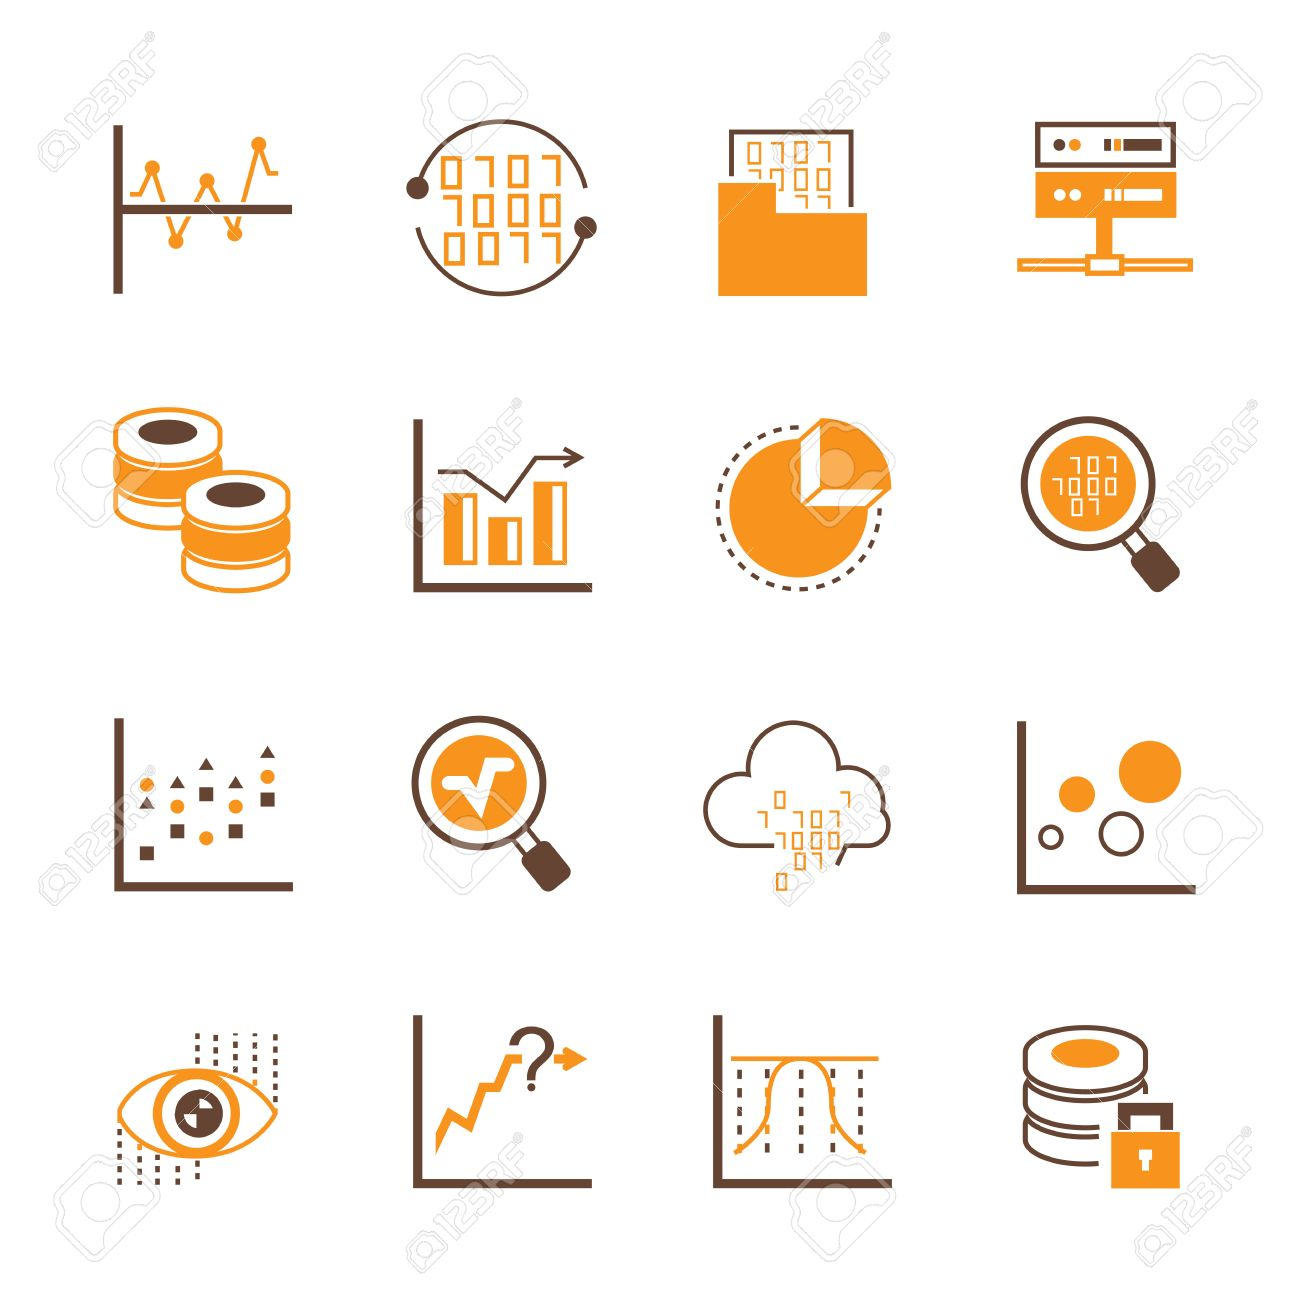 data analytics icons royalty free cliparts vectors and stock